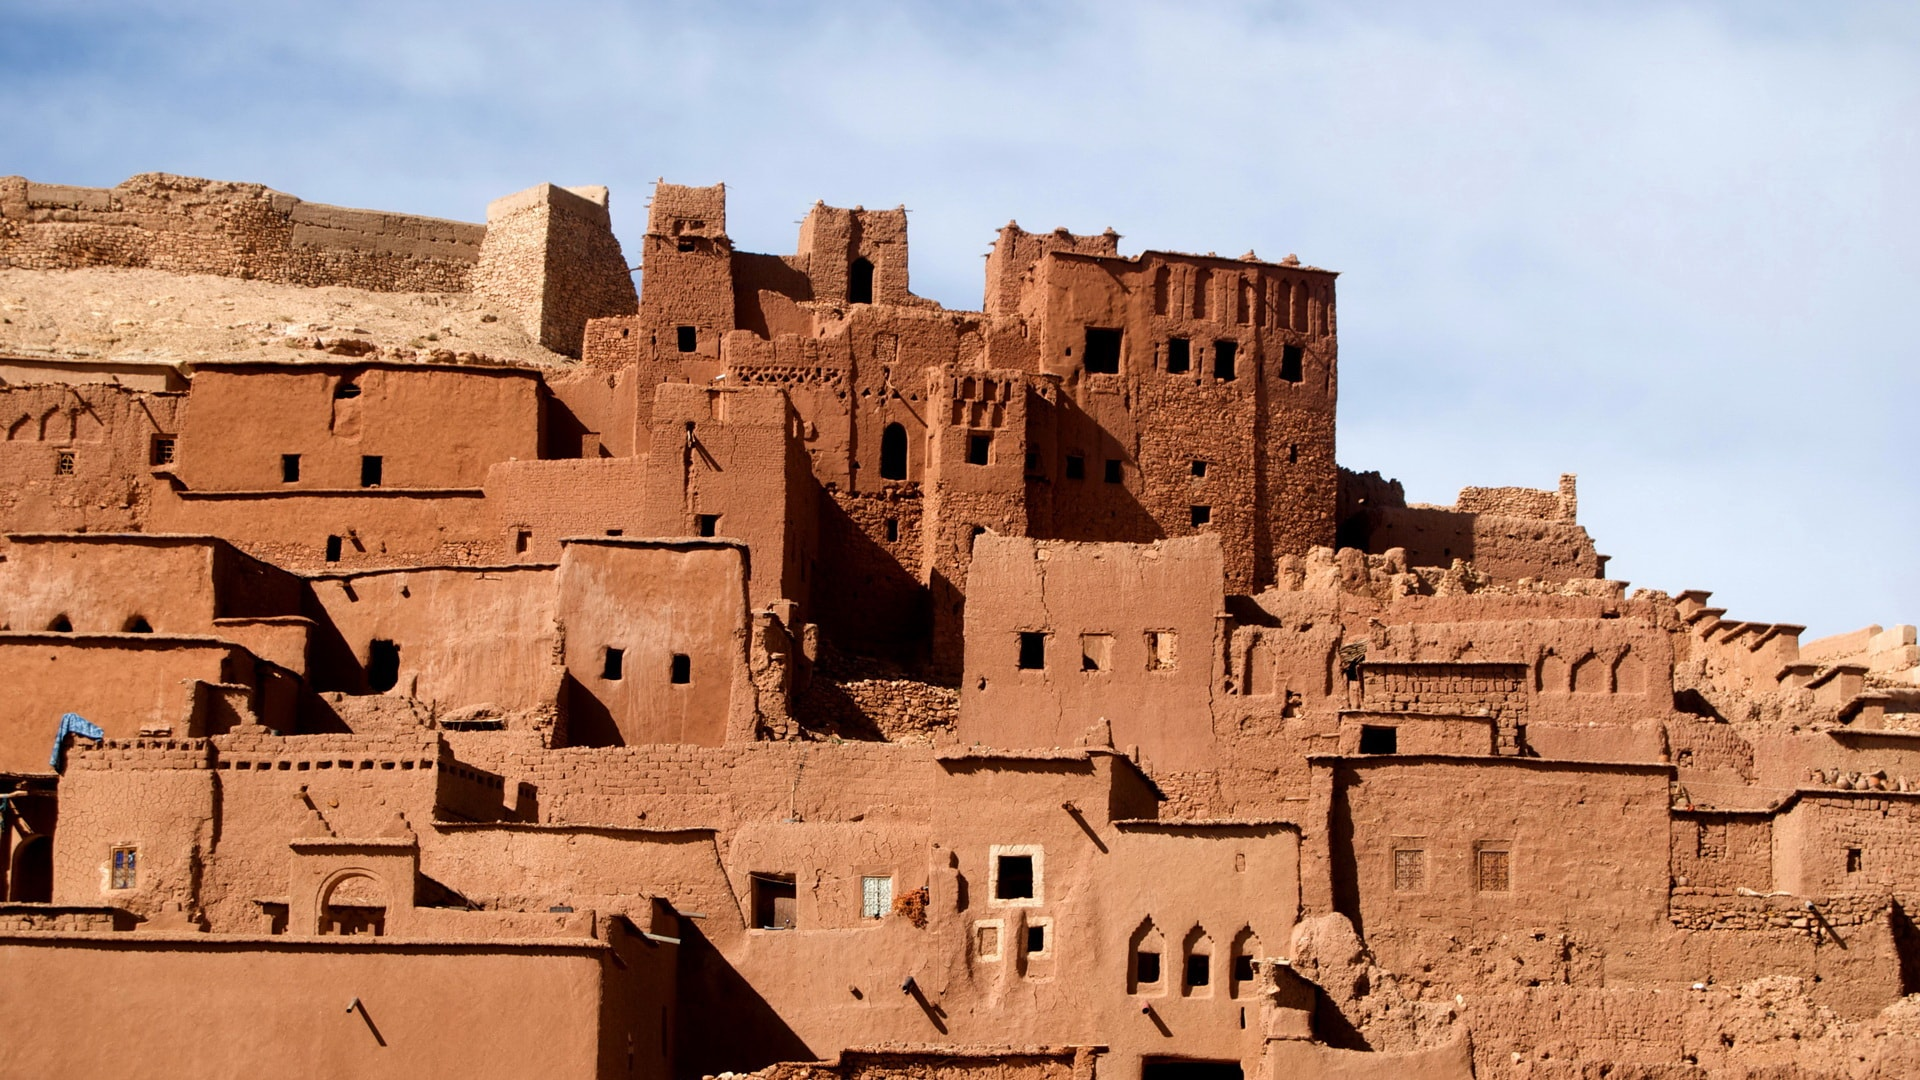 Pathfinders treks - 6 day trek morocco high atlas from Marrakech